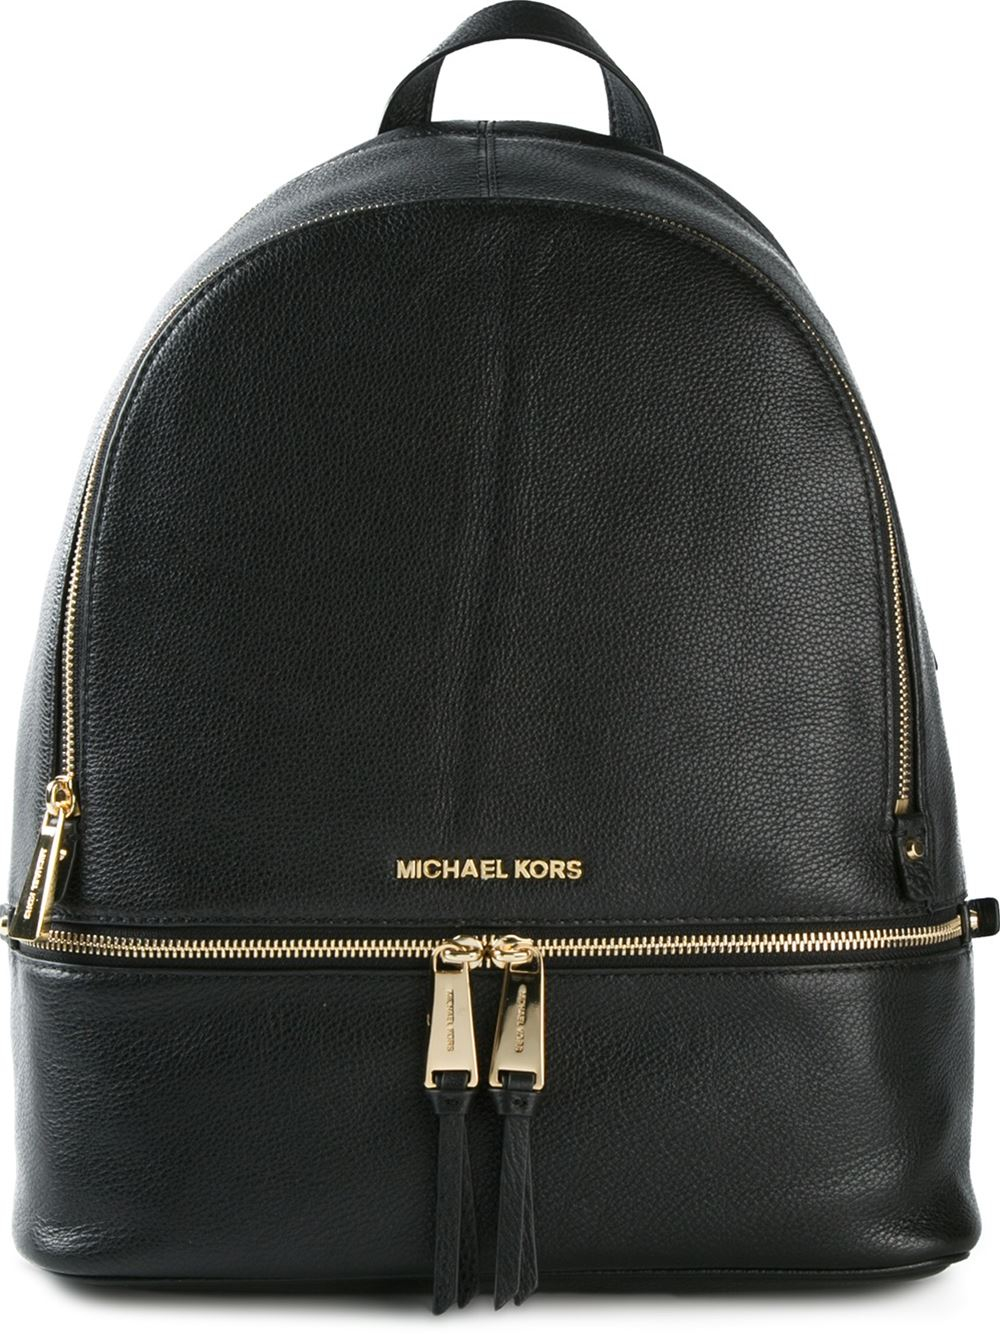 Lyst - Michael Michael Kors 'Rhea' Backpack in Black